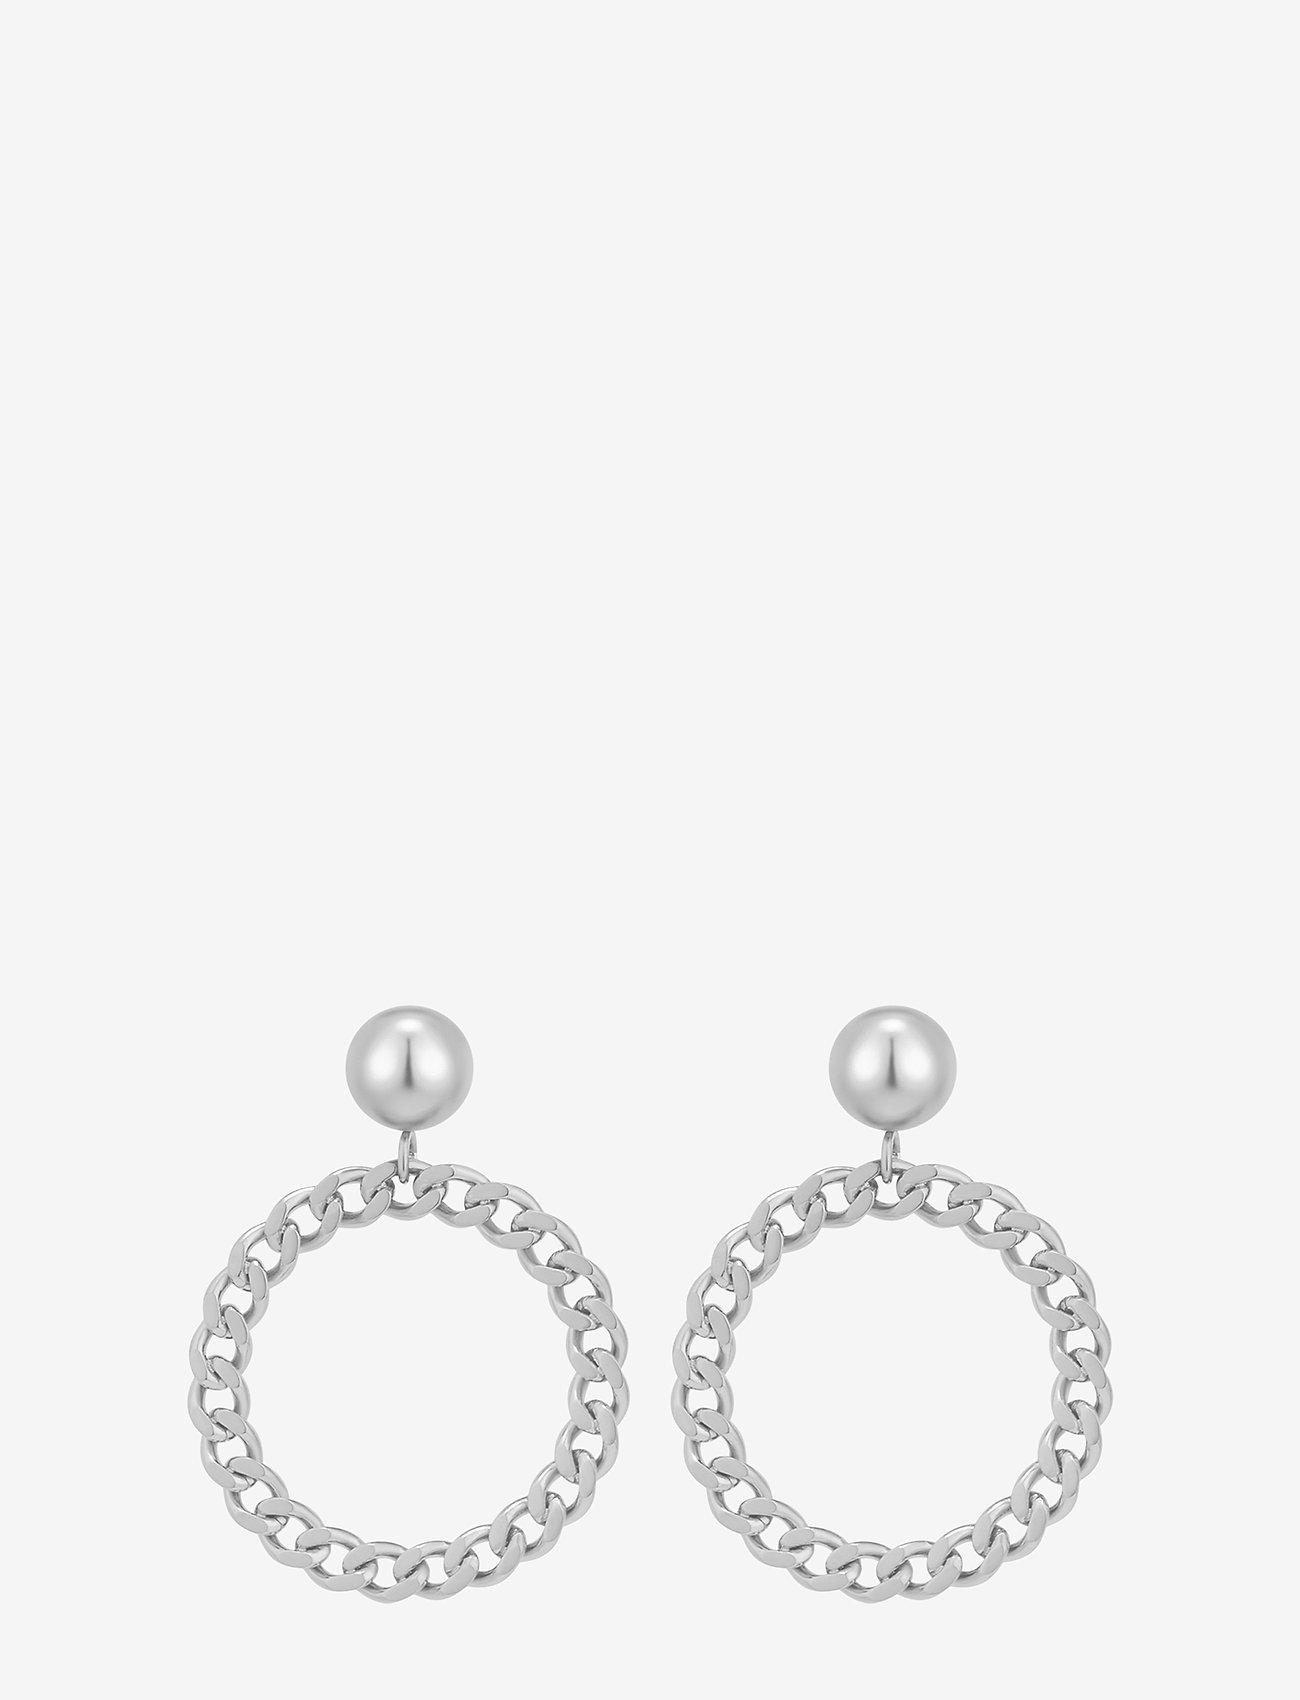 Bud to rose - Devious Chain Earring Steel - pendant - silver - 1